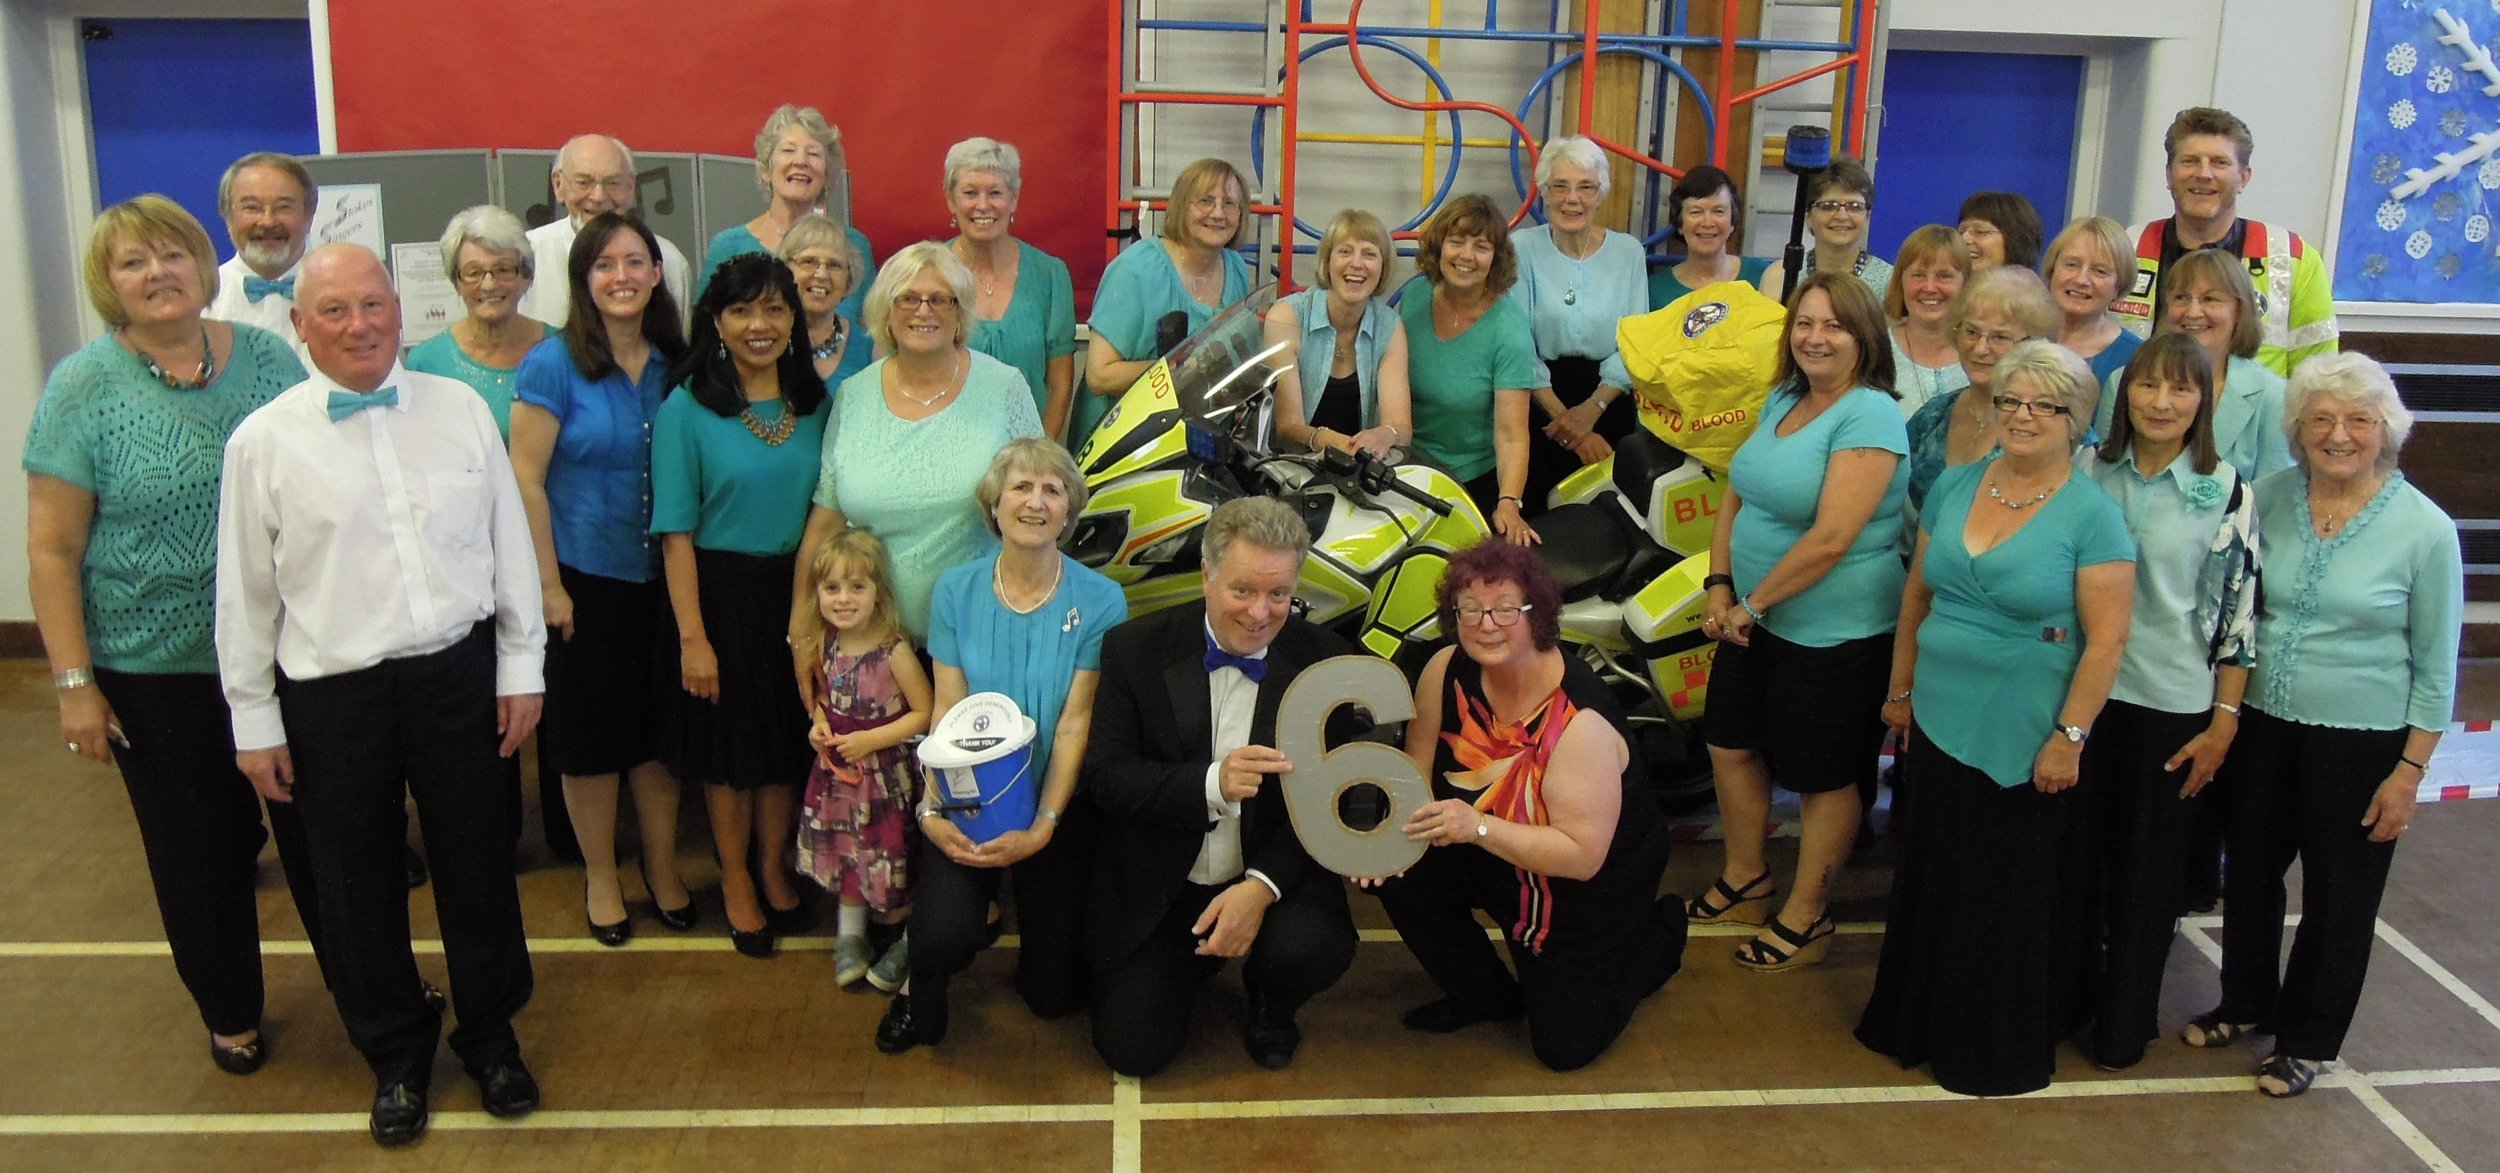 Event 6: Our Summer Concert at Little Stoke Primary School when we raised over £300 for the Freewheelers motorcycle charity who deliver vital medical supplies within the NHS and the community.